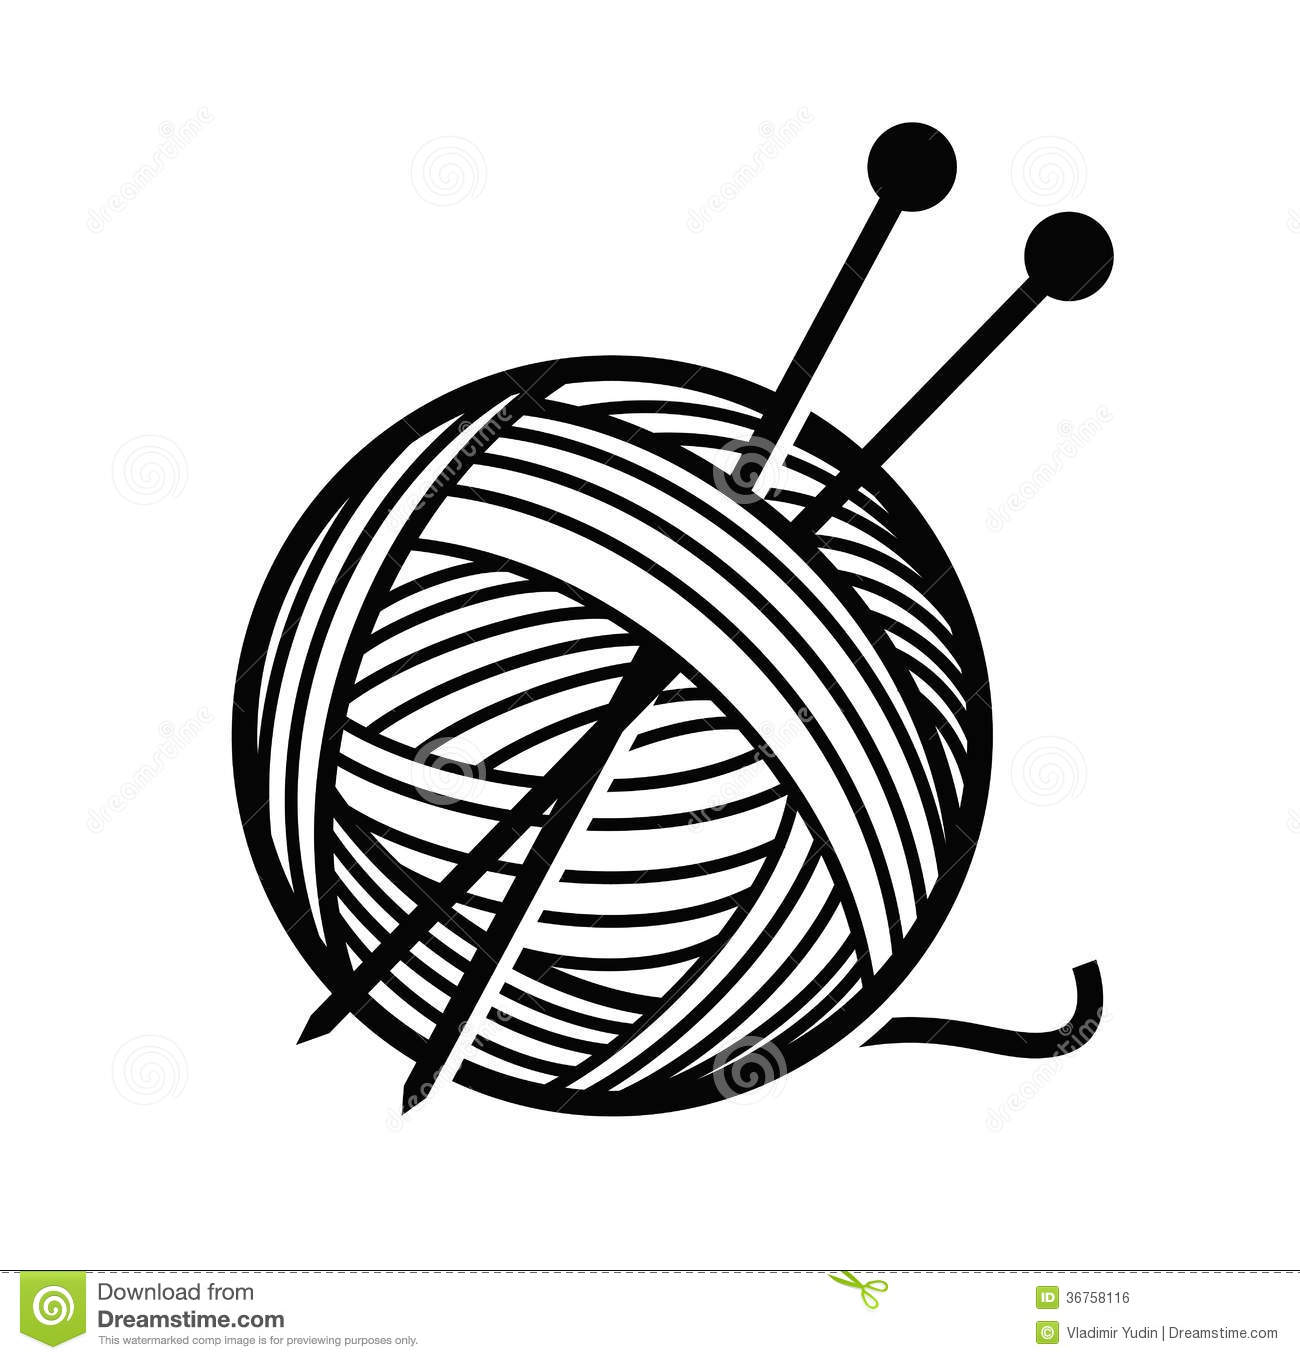 Yarn Stock Illustrations.